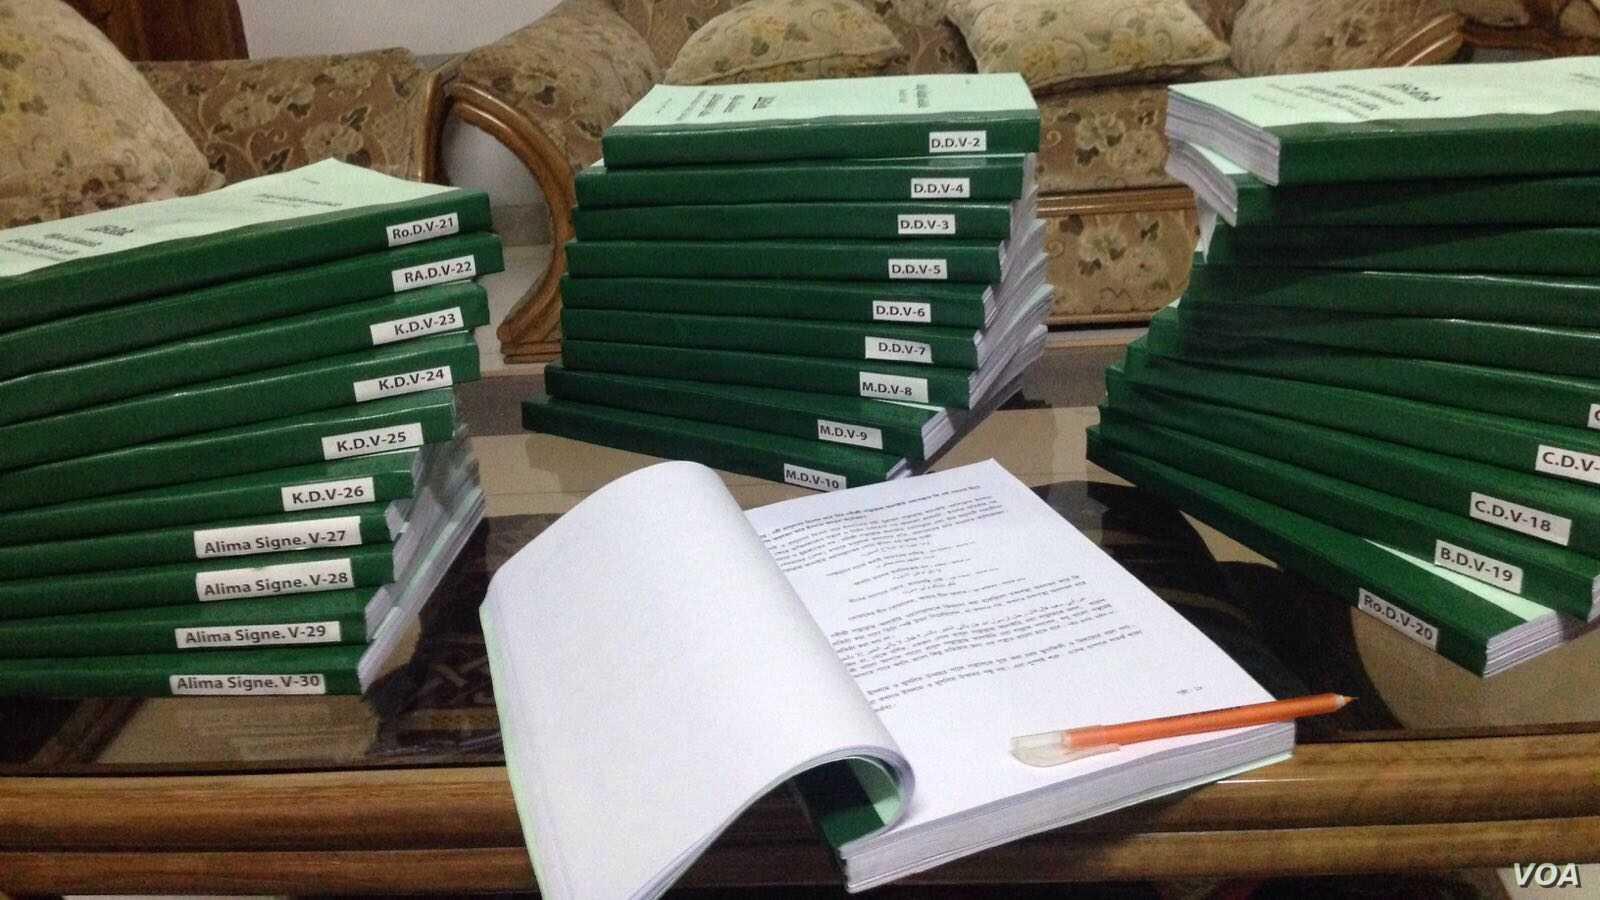 The paperwork of the fatwa on terrorism carried in 30 volumes. (J. Samnoon for VOA)